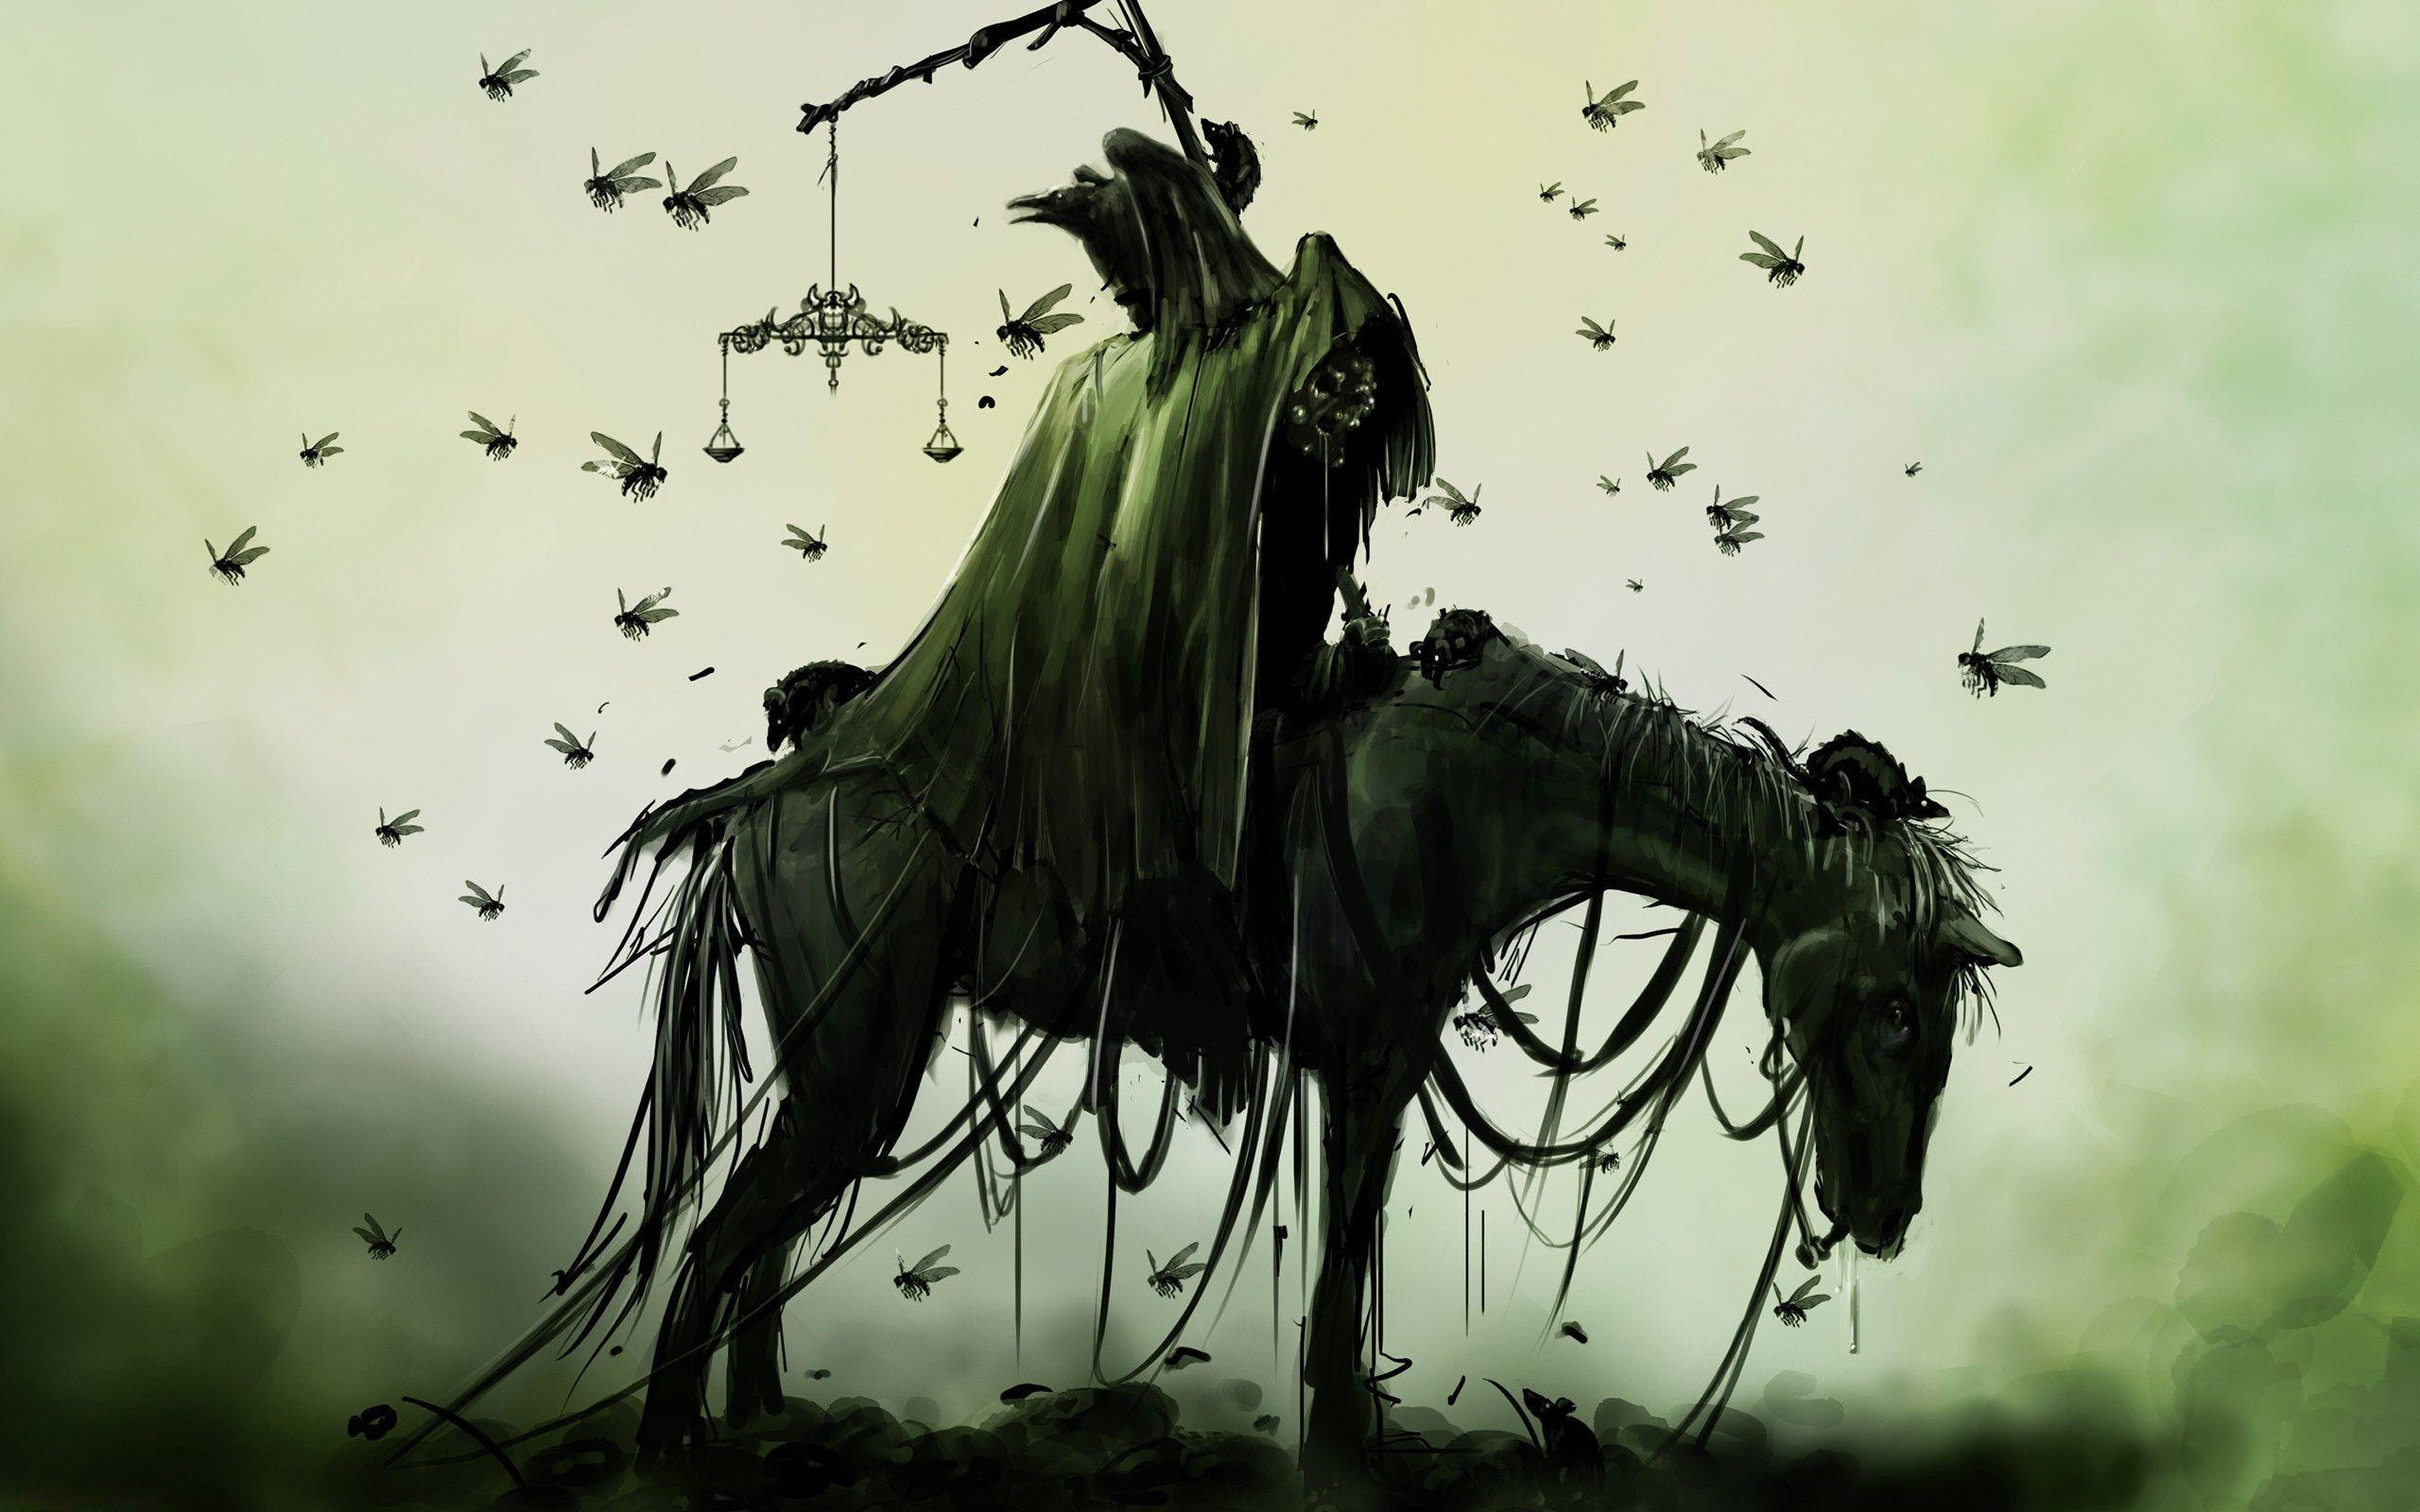 Hd Creepy Knight On The Horse Wallpaper Download Free 149973